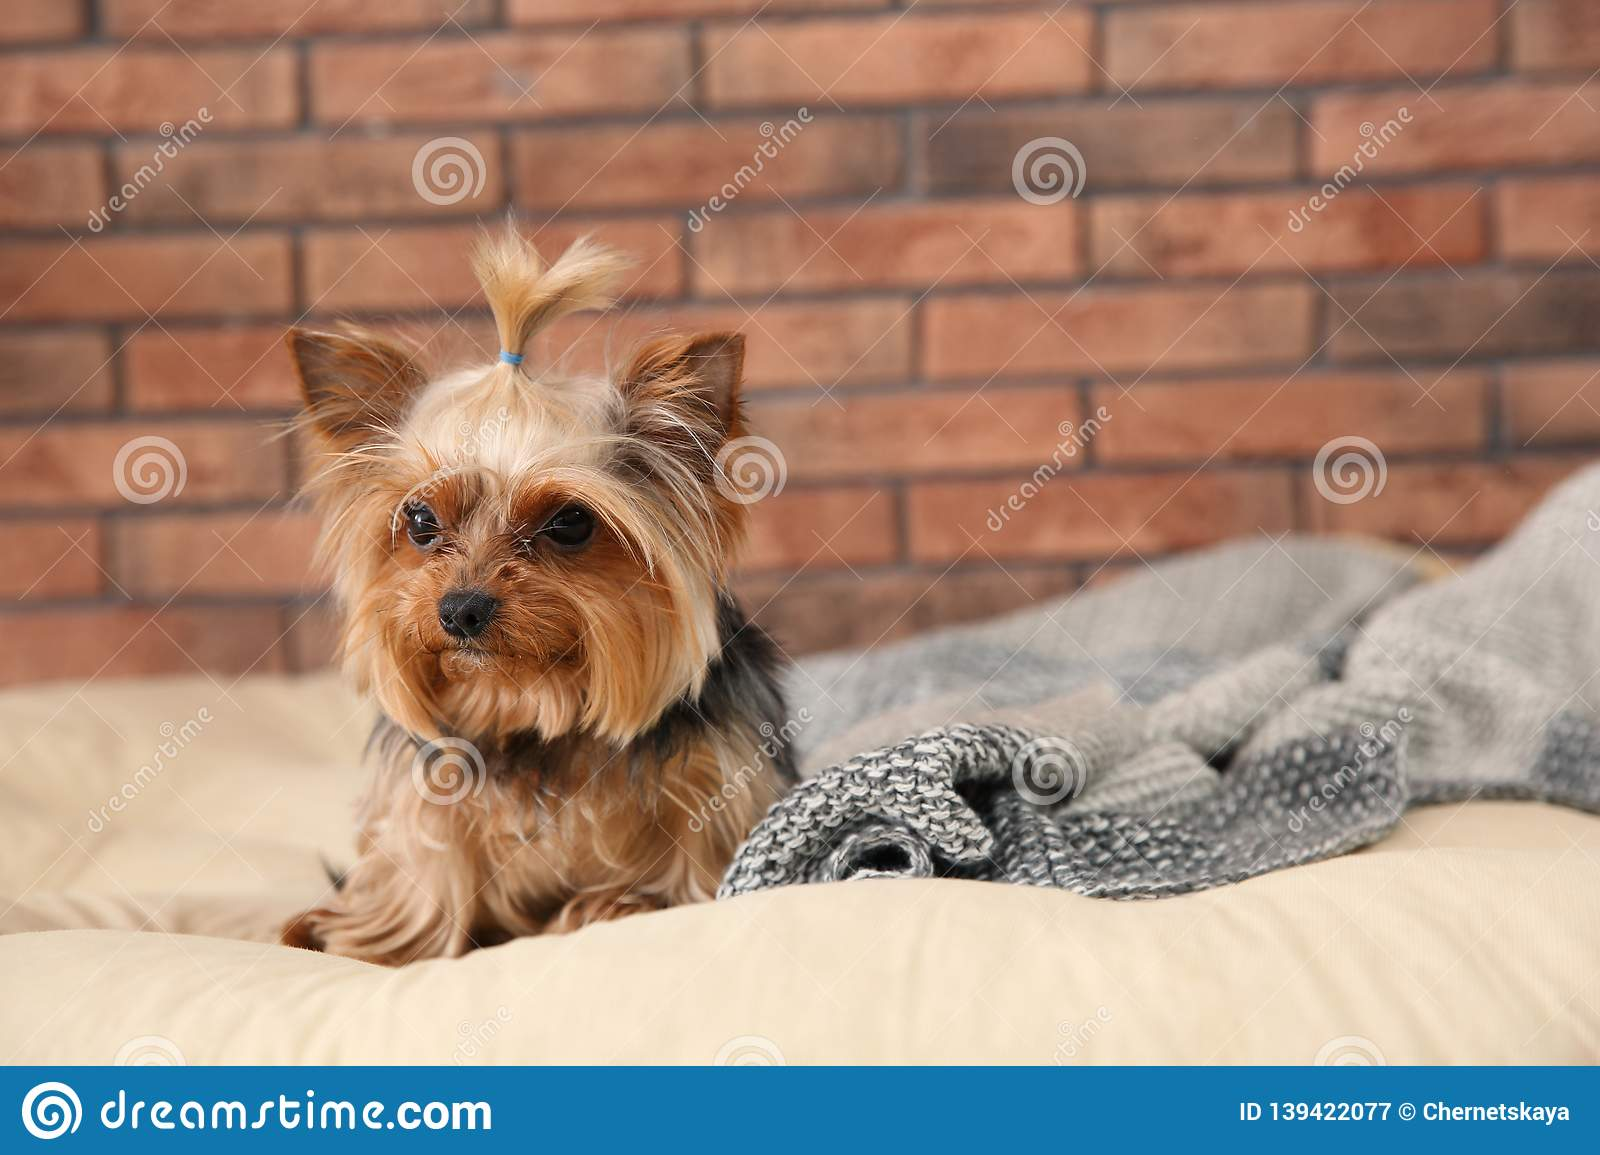 Yorkshire terrier on pet bed against brick wall, space for text.